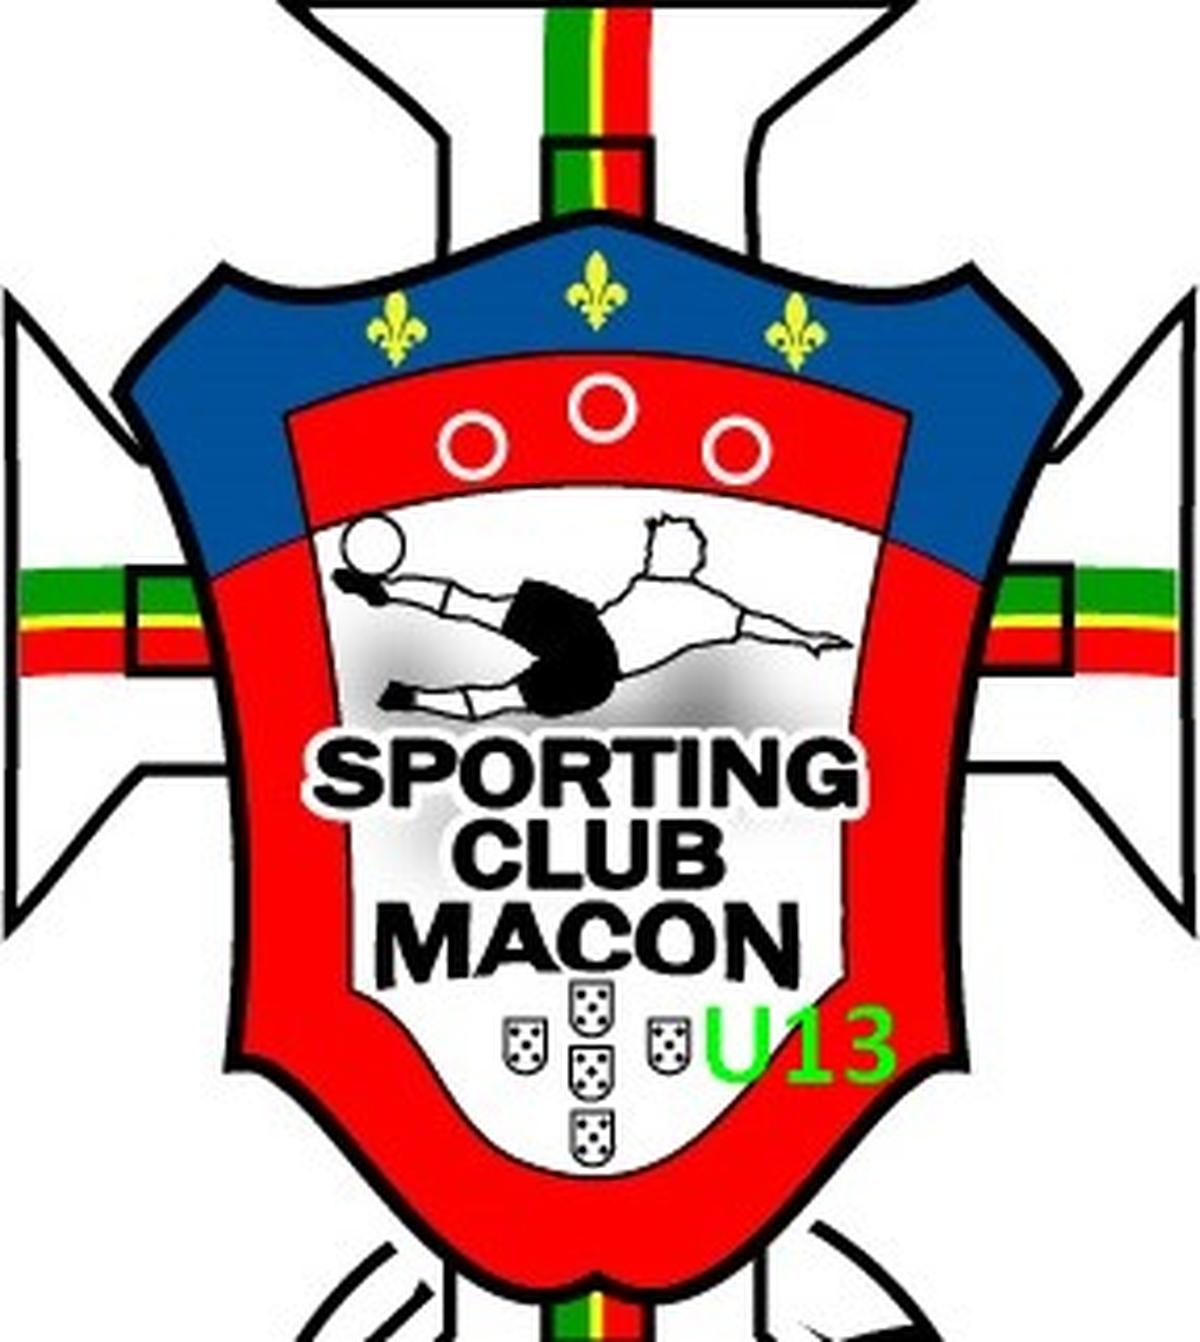 mâcon sporting U13